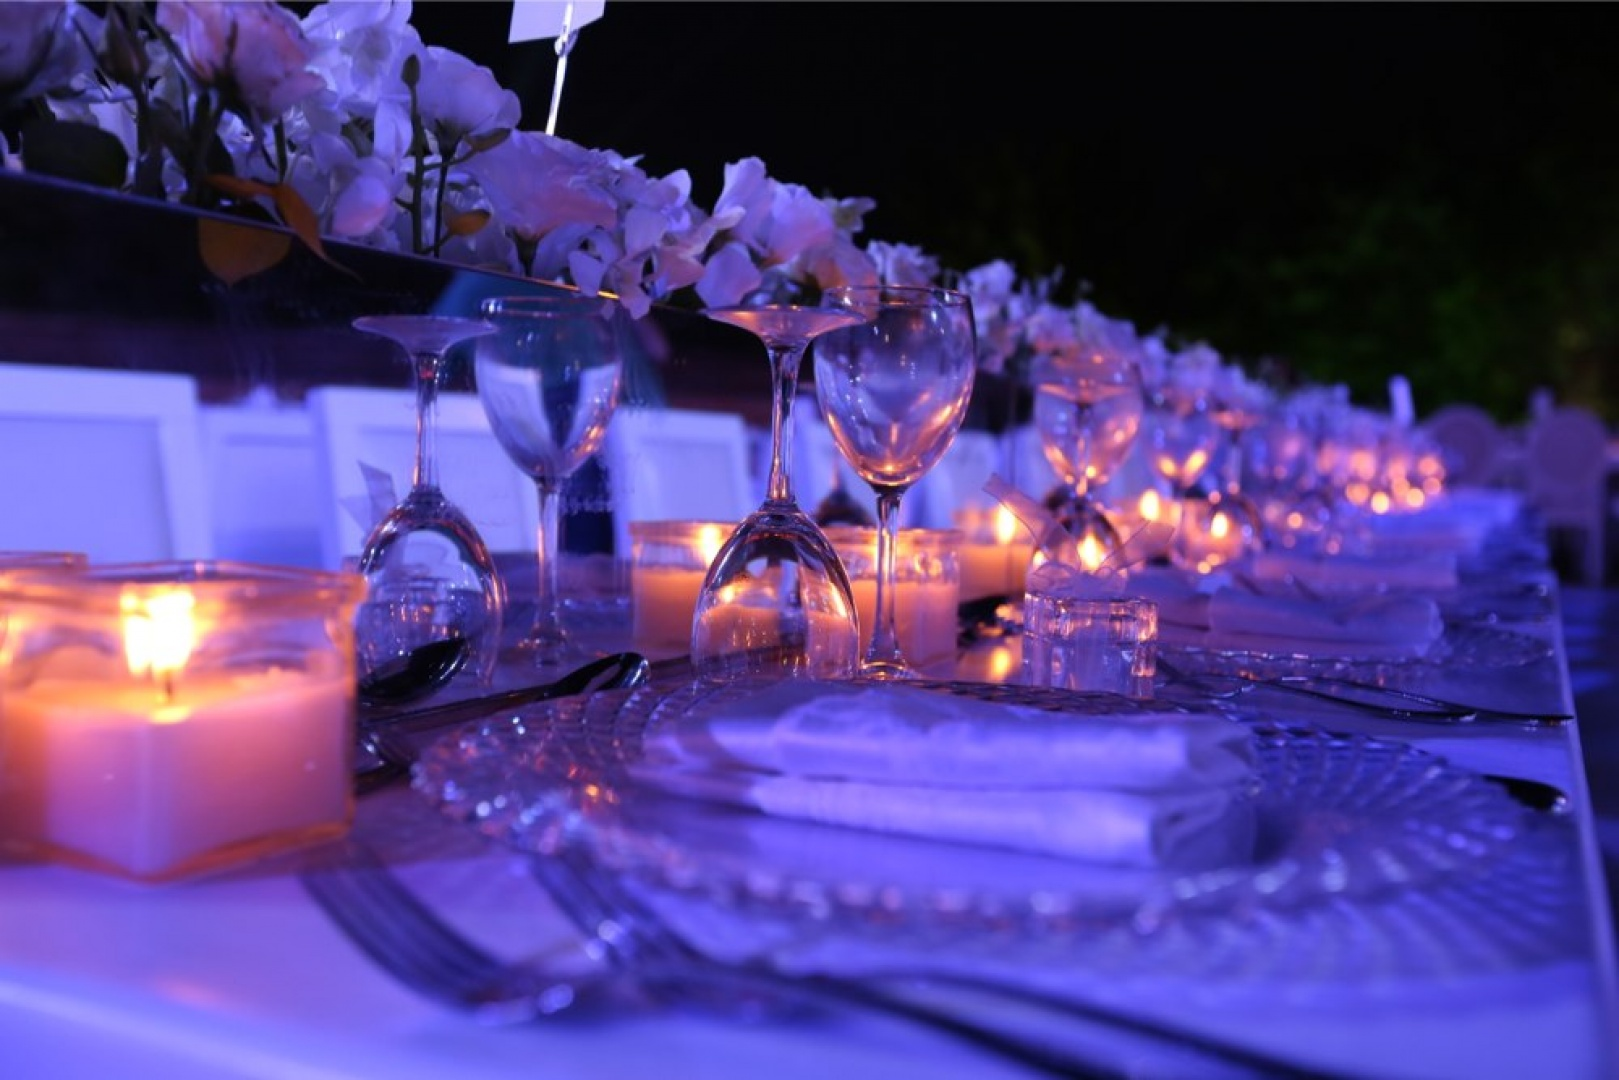 LIGHTS & REFLECTIONS. WEDDING CENTREPIECES.